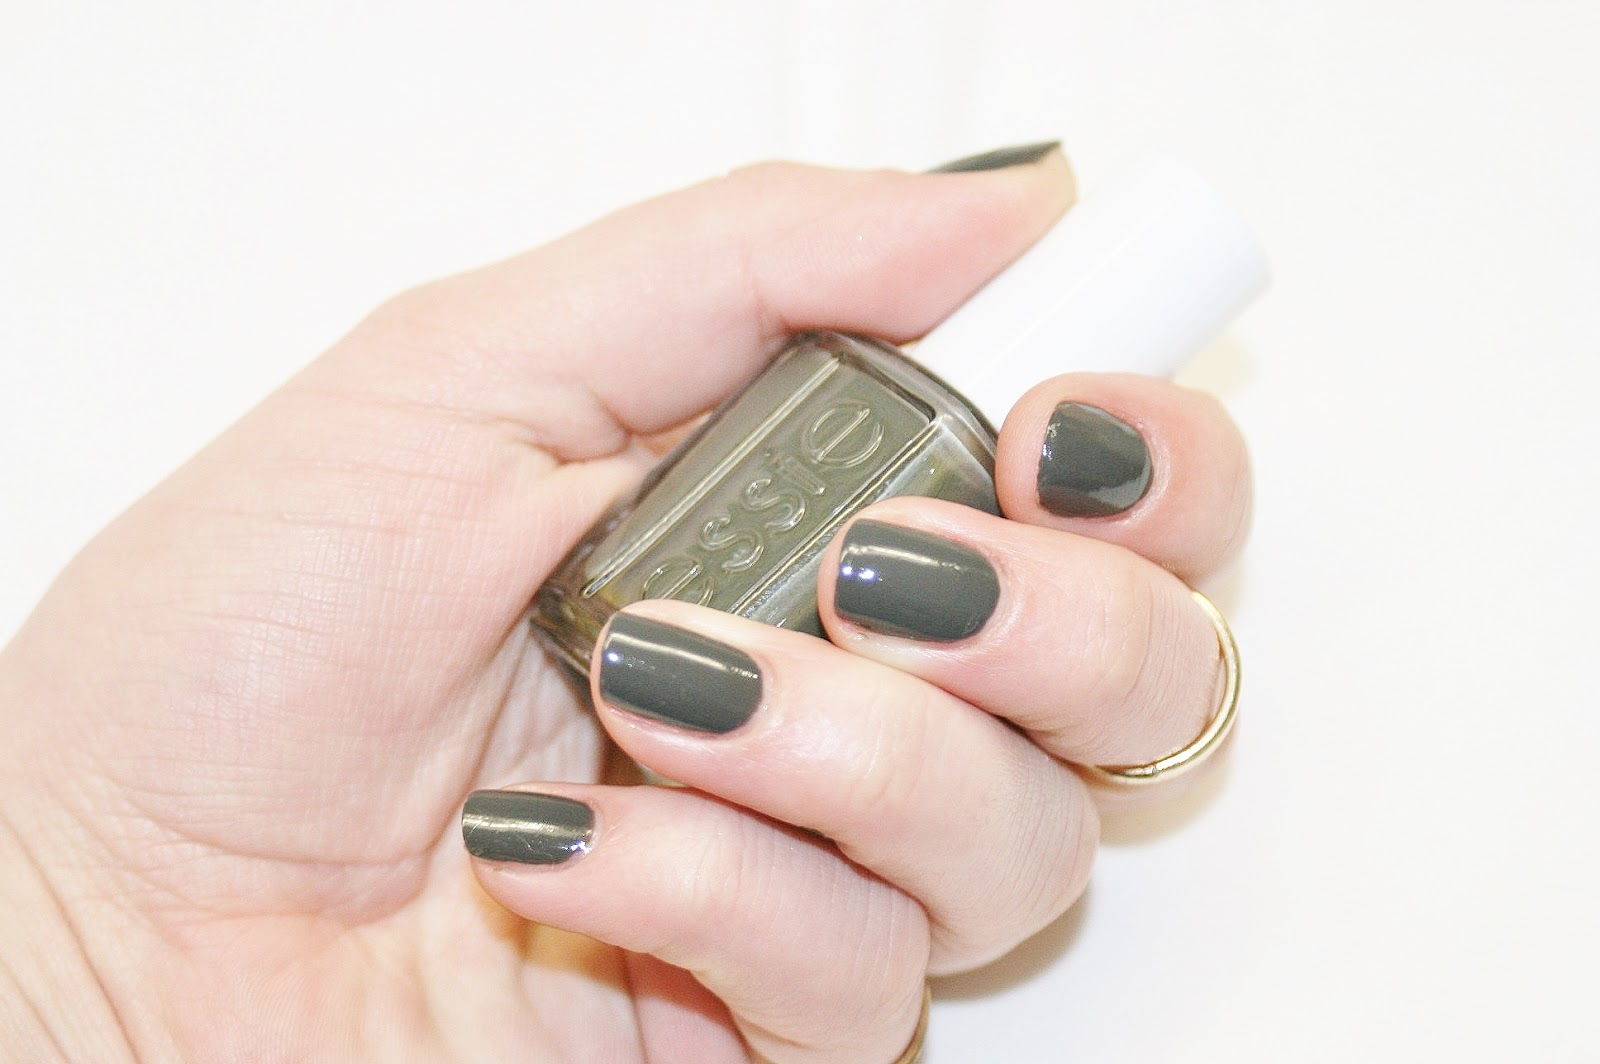 Katherine Penney Chic Style Beauty Manicure Nails Polish Essie Khaki Spring Pretty Gold Rings Urban Modern